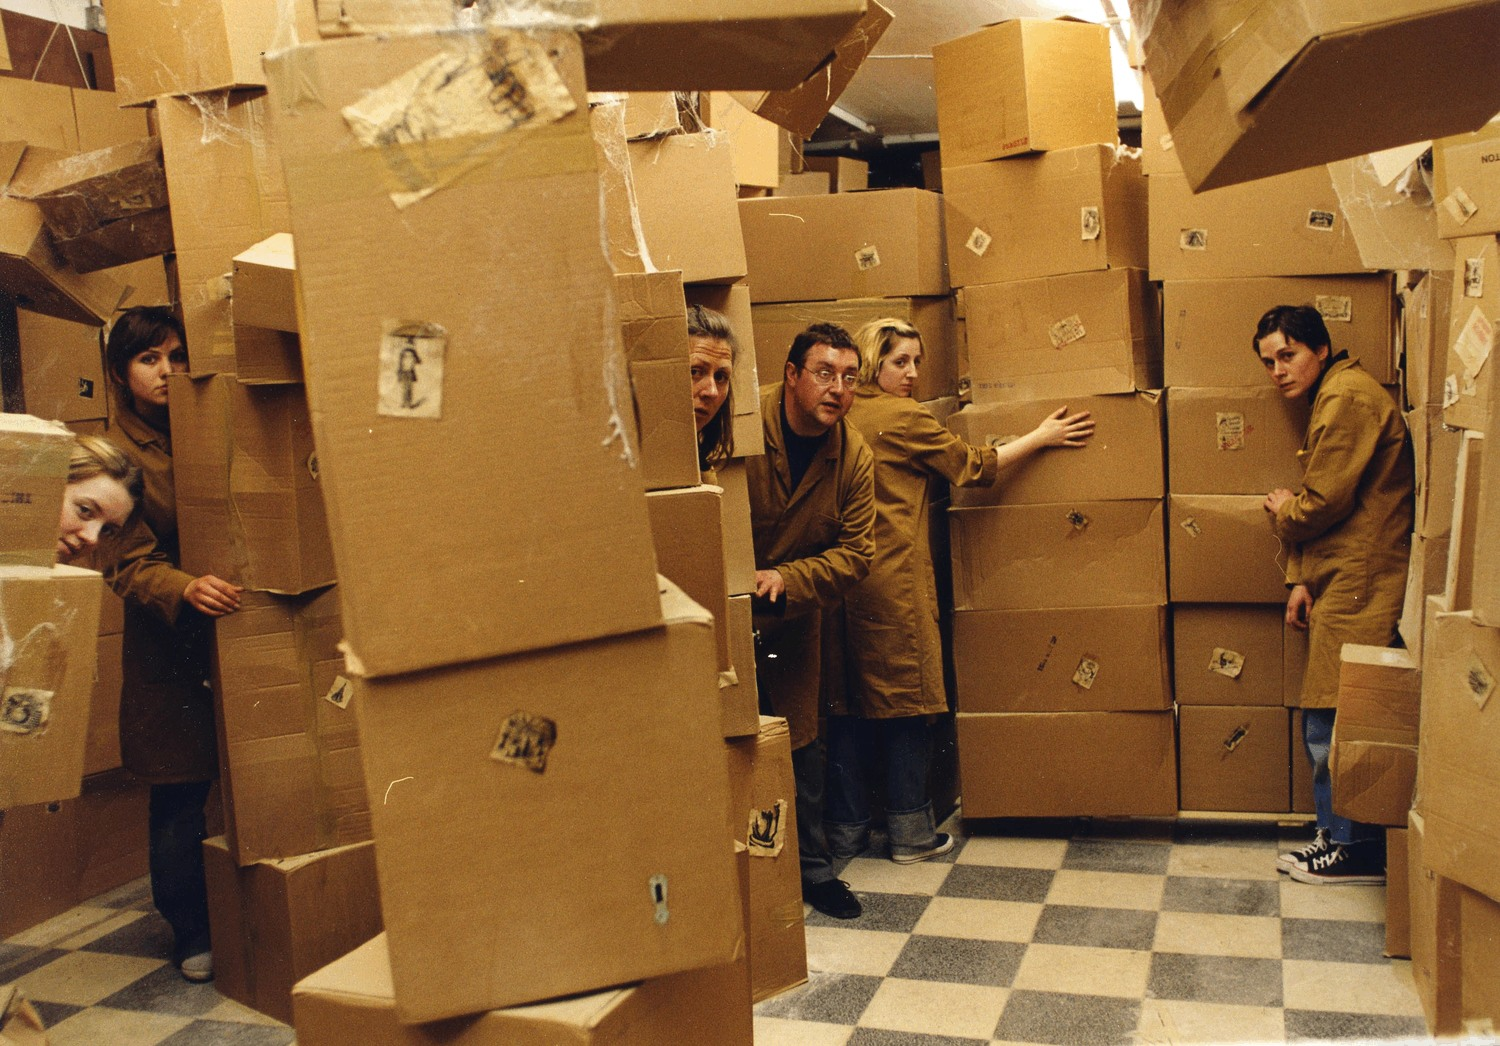 5 shopkeepers creep through a room full of towers of cardboard boxes